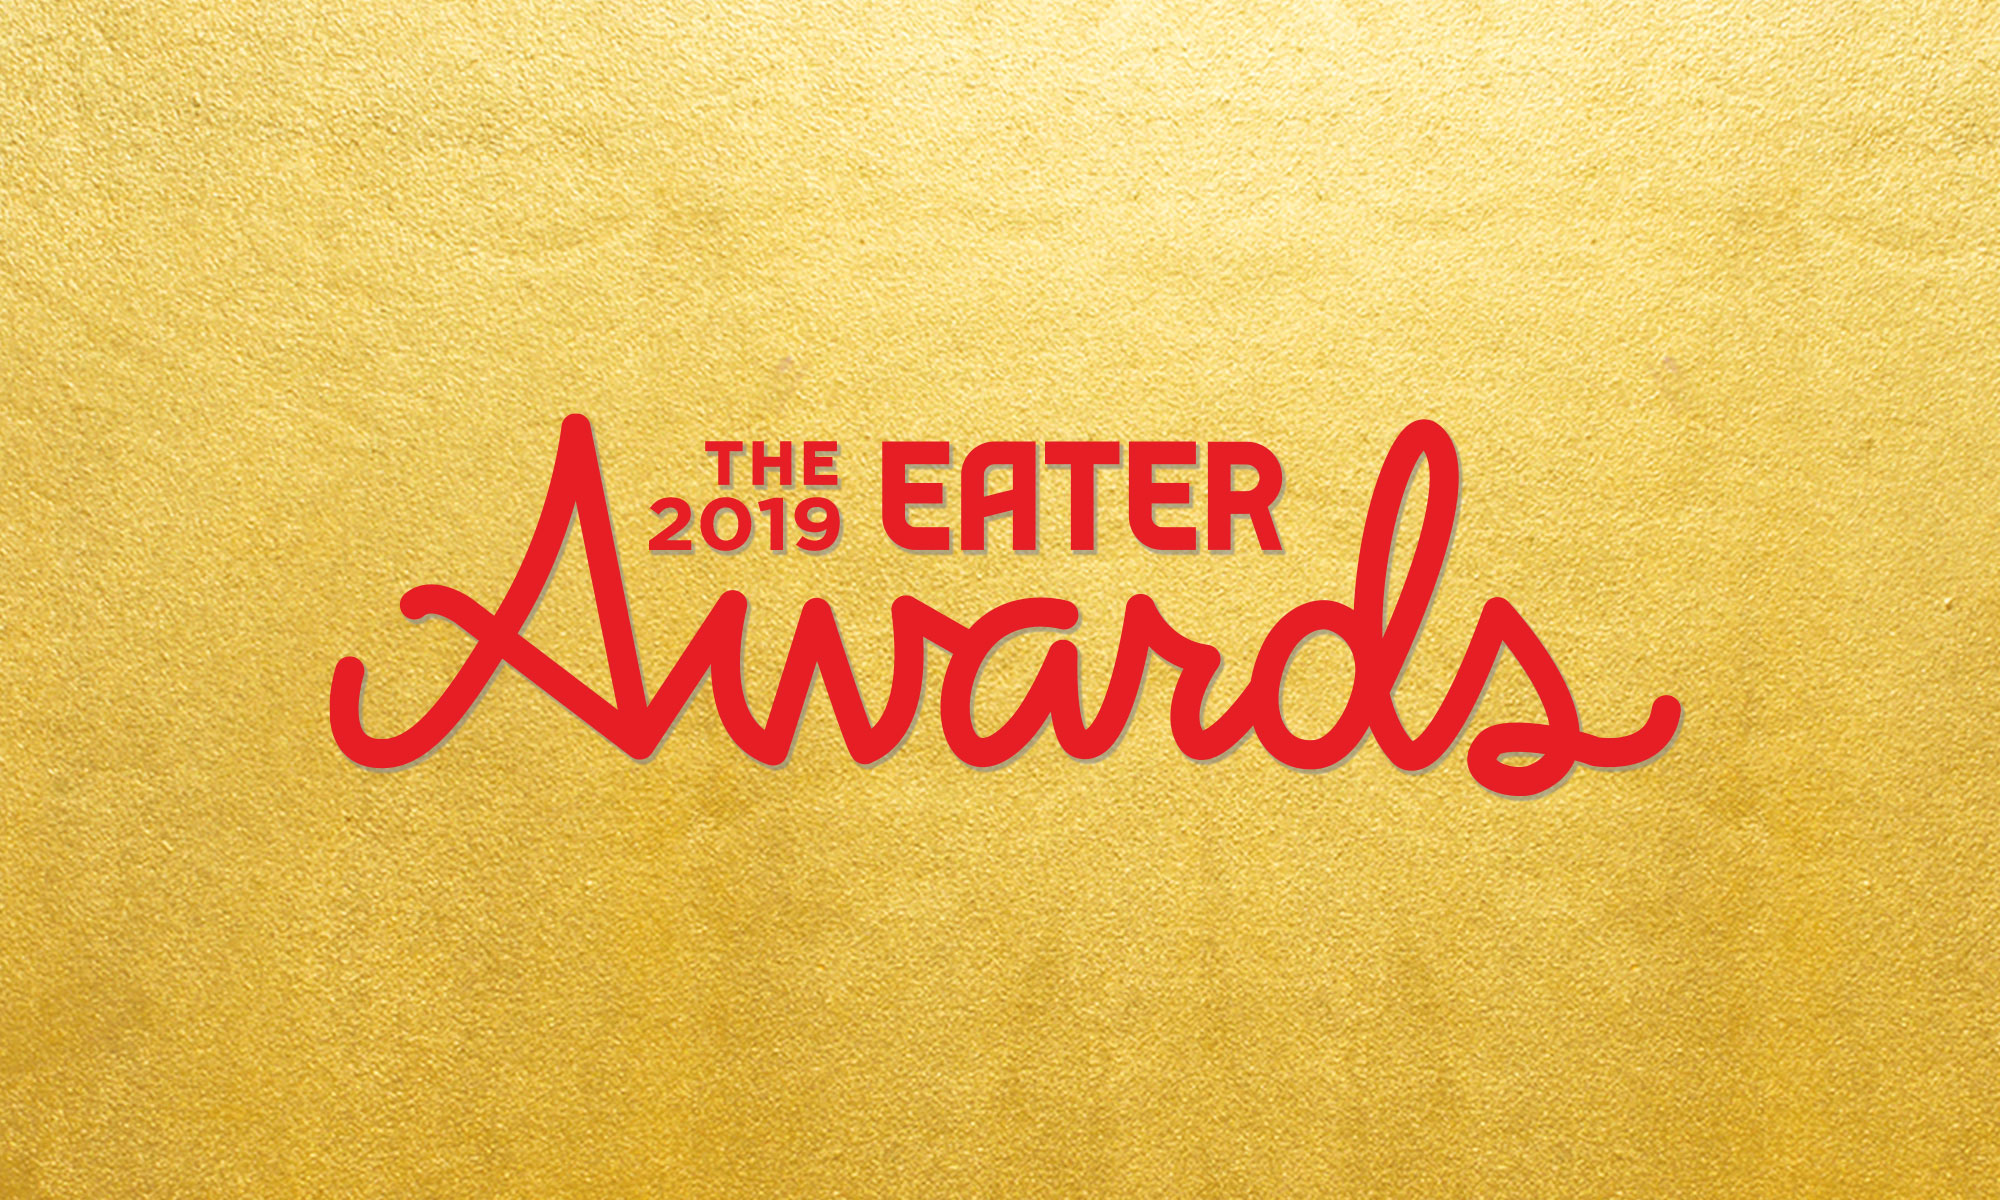 Eater Awards 2019: Here Are the Montreal Finalists